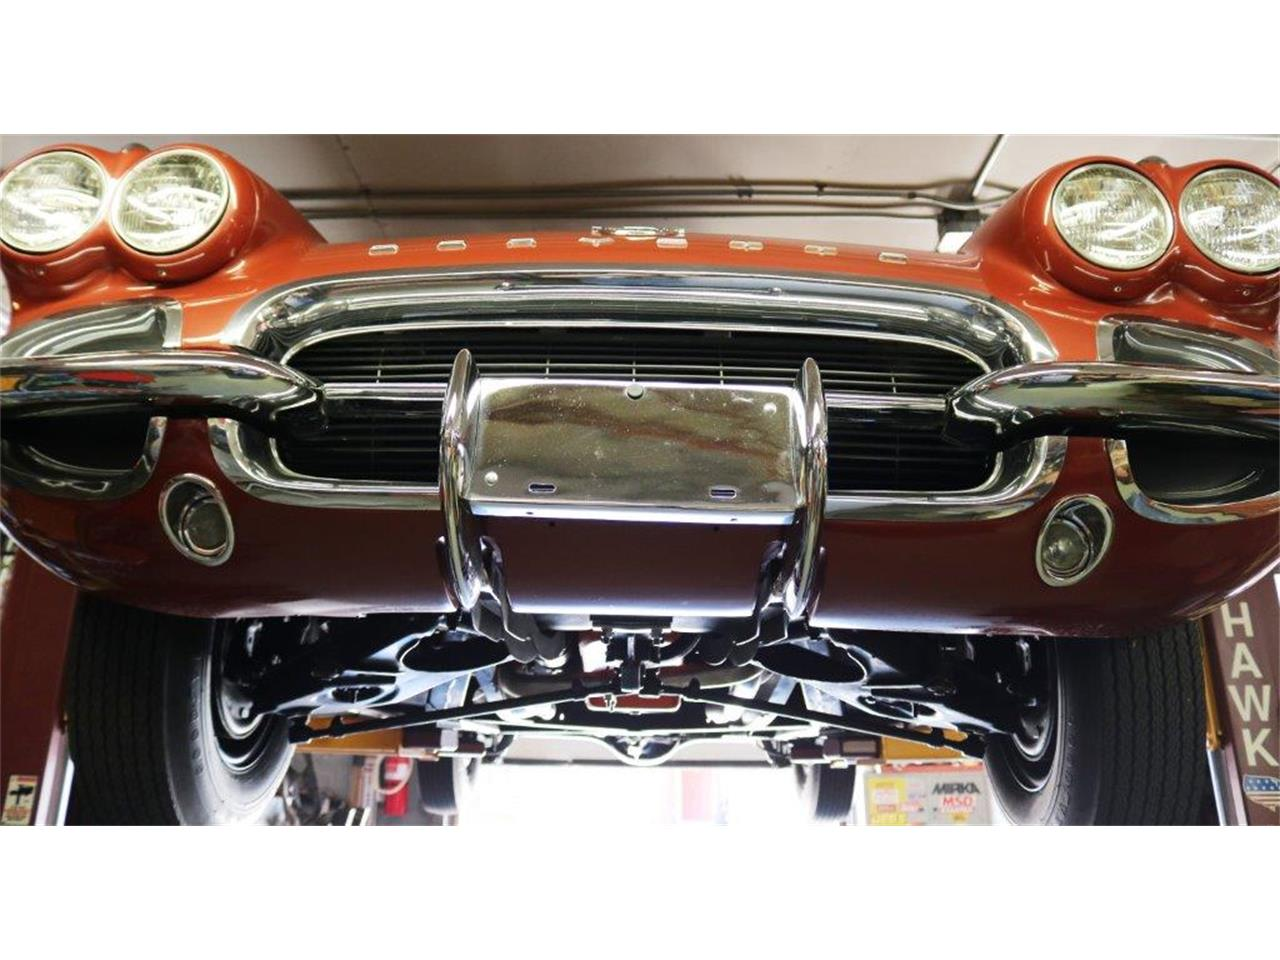 Large Picture of '62 Corvette located in New Jersey - $99,000.00 Offered by a Private Seller - OMBK